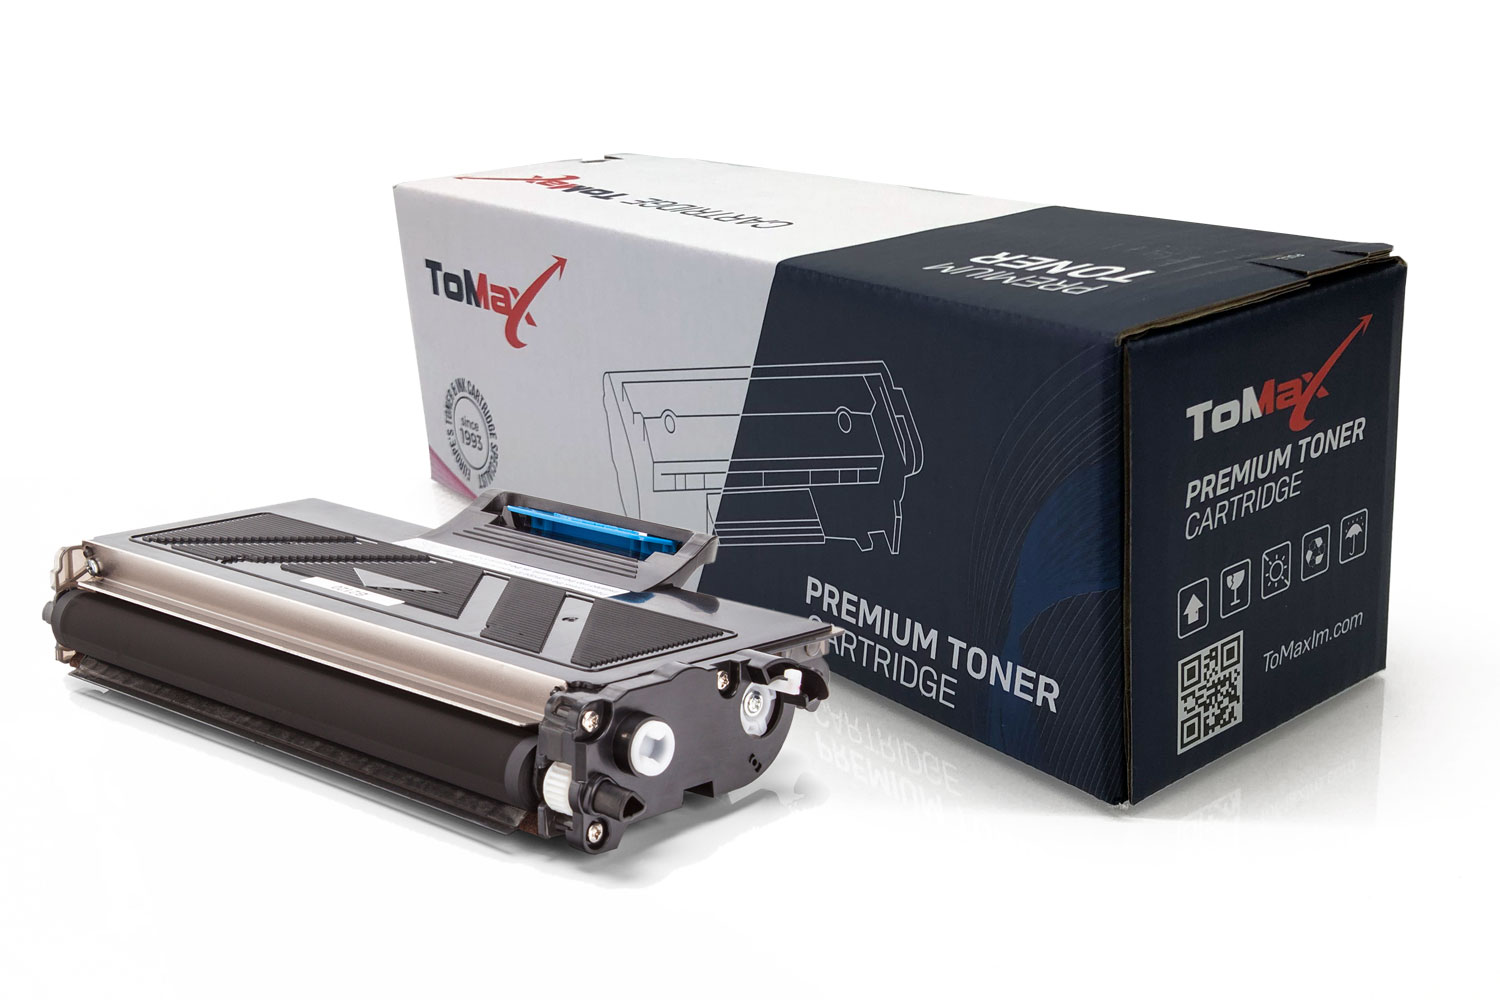 ToMax Premium Toner Cartridge replaces OKI 44469706 / C310 Cyan